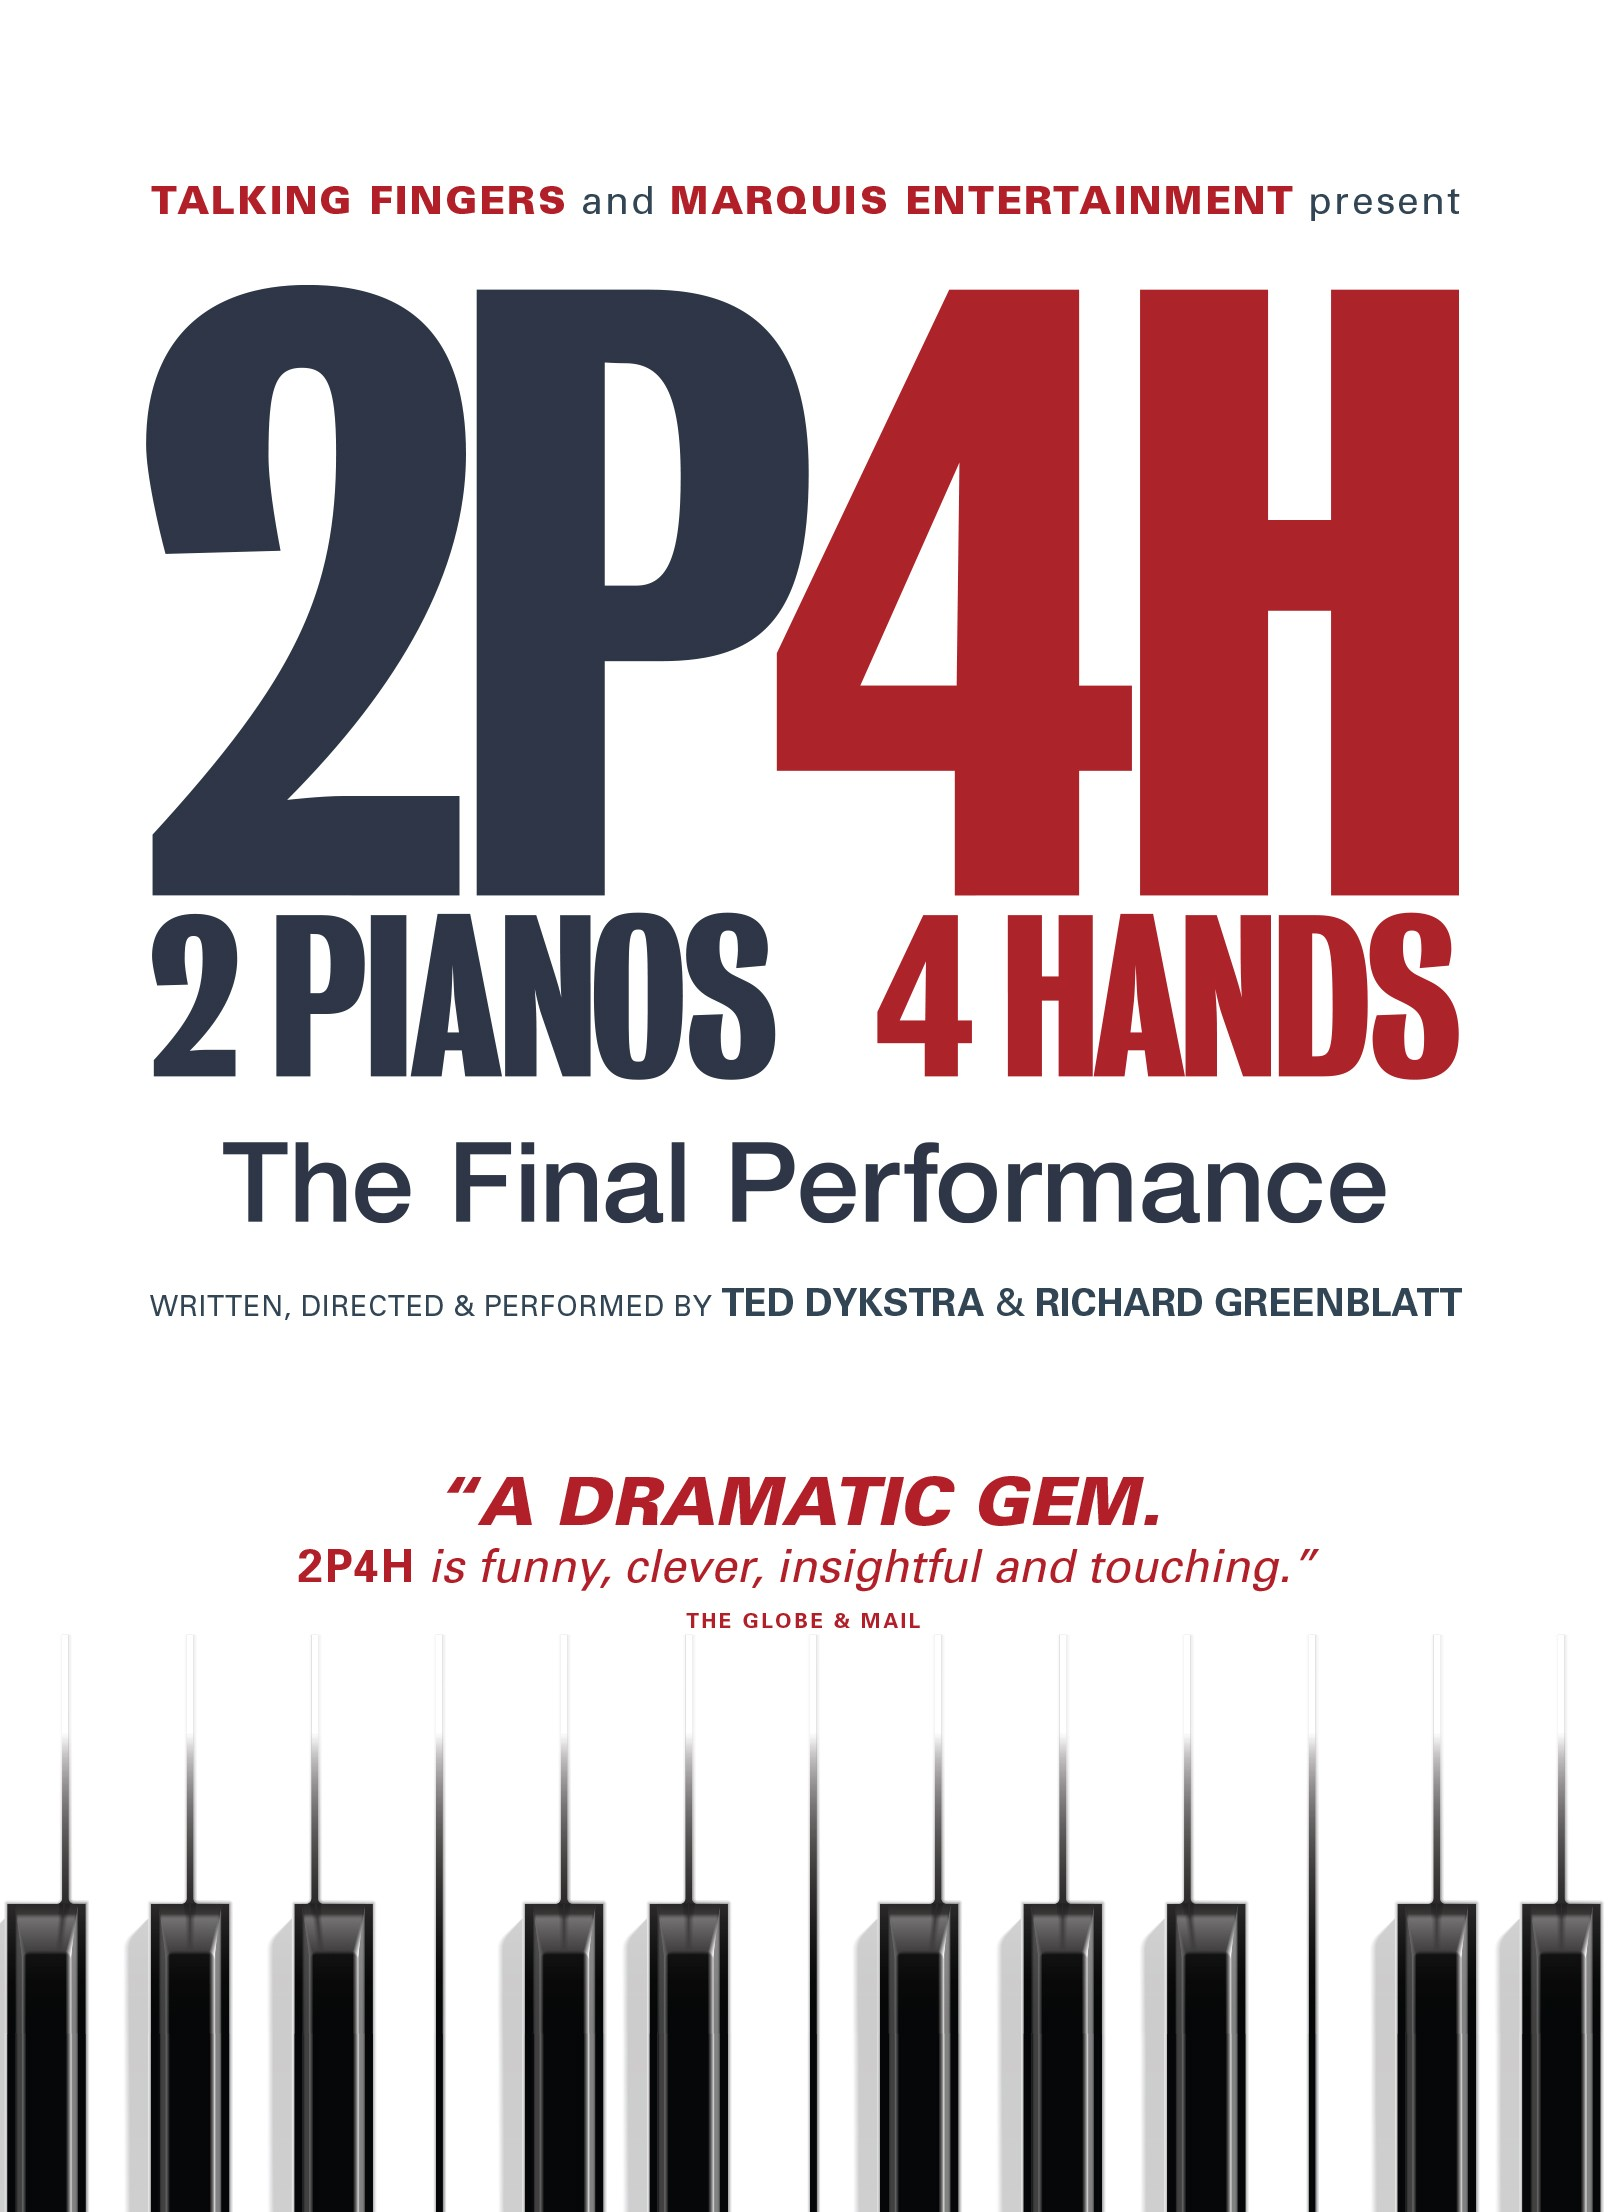 2 Pianos 4 Hands DVD + Book Bundle